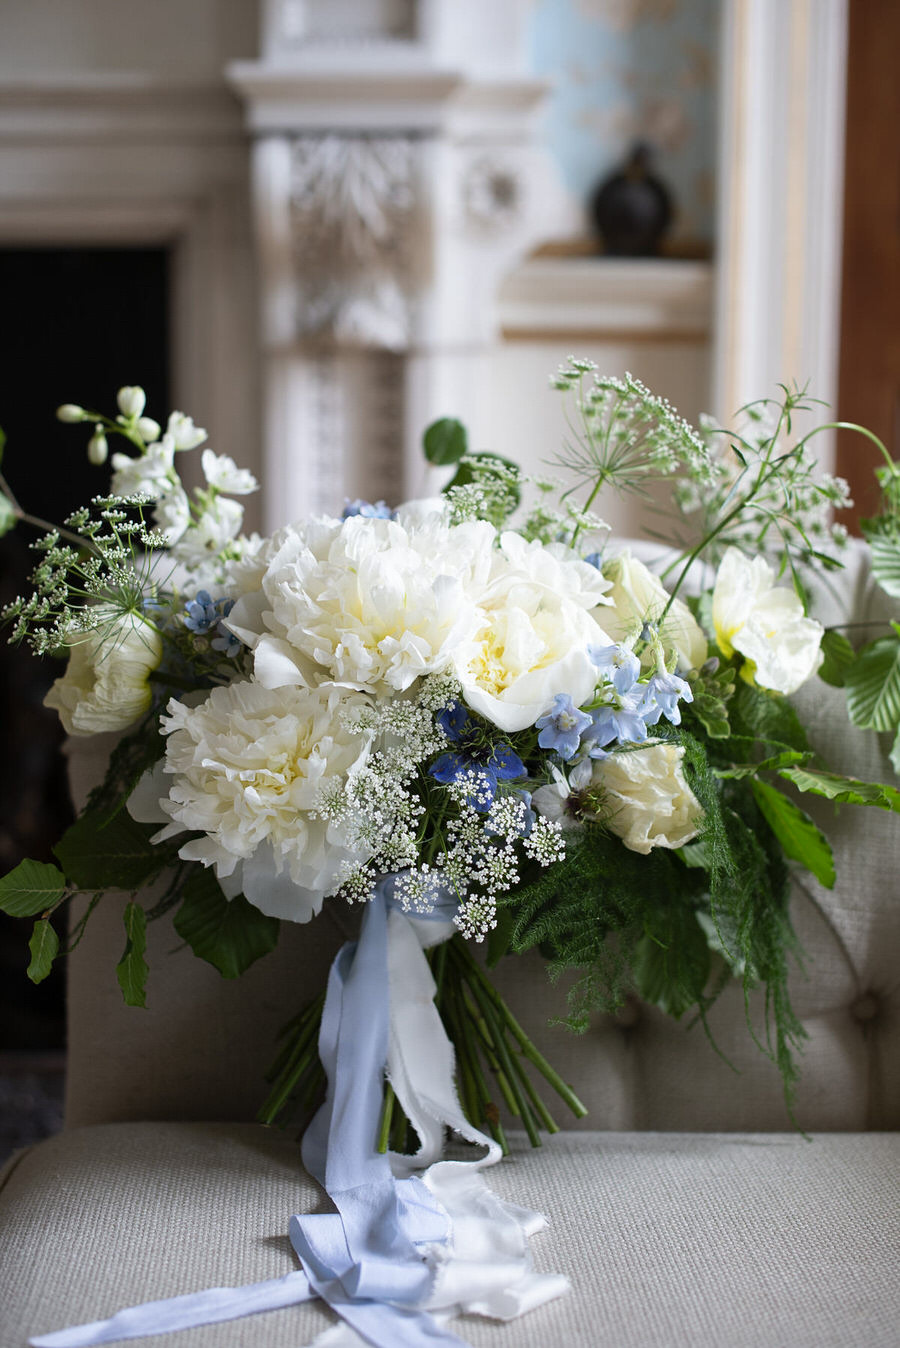 Pynes House wedding styling ideas with Ailsa Munro, Sarah Shuttle and Lottie Ettling PHotography (2)